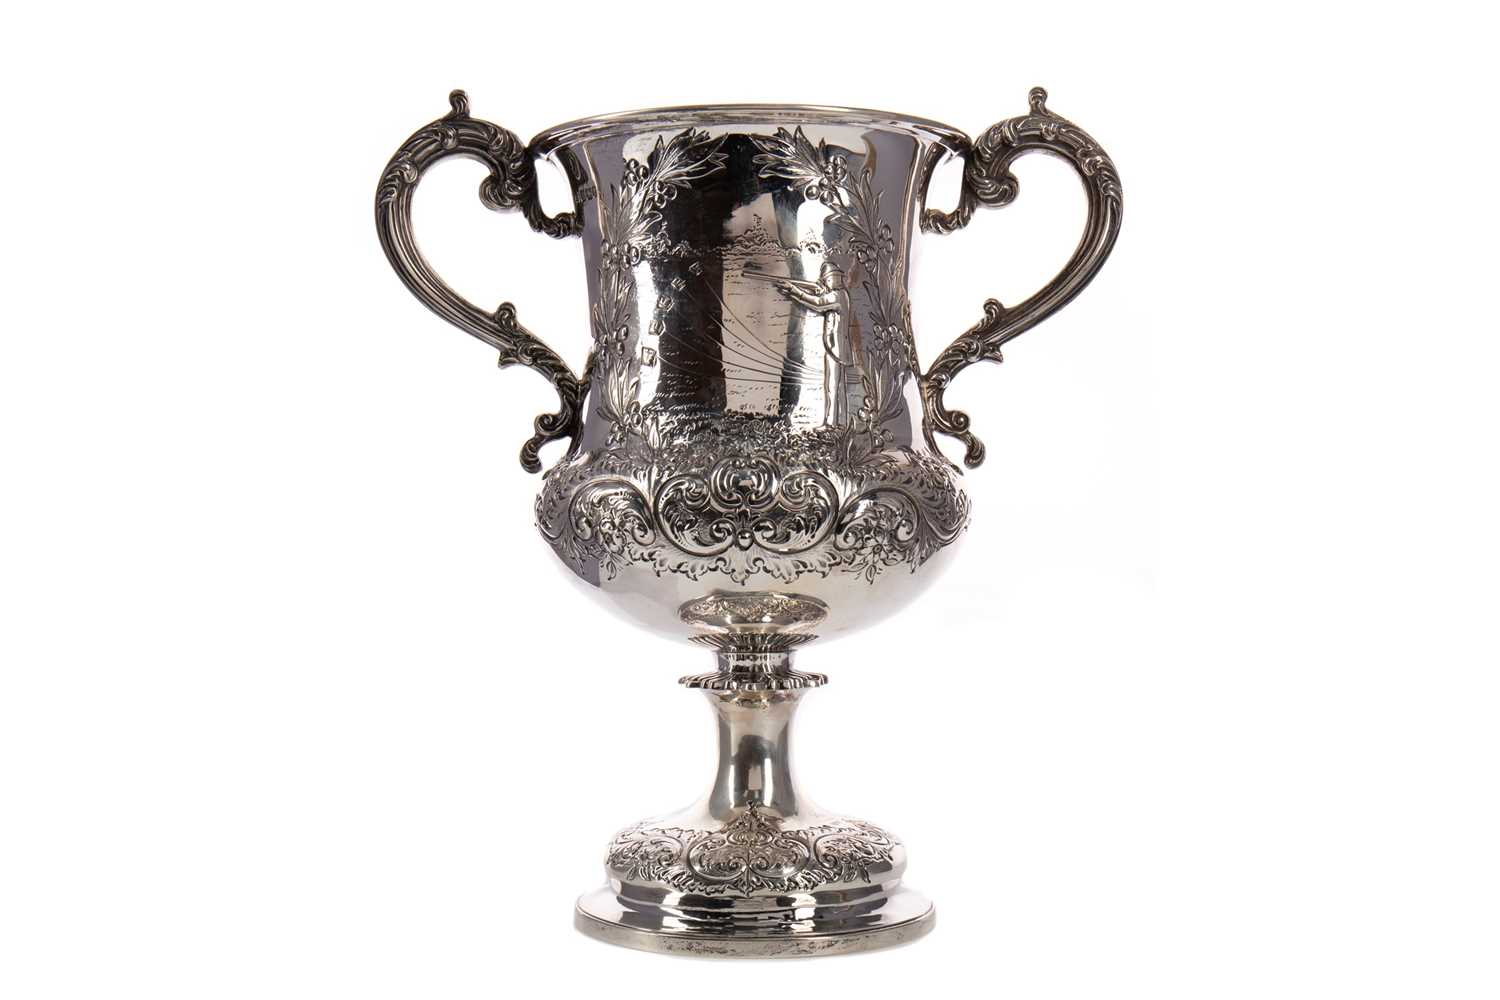 Lot 415 - A VICTORIAN SILVER TROPHY CUP